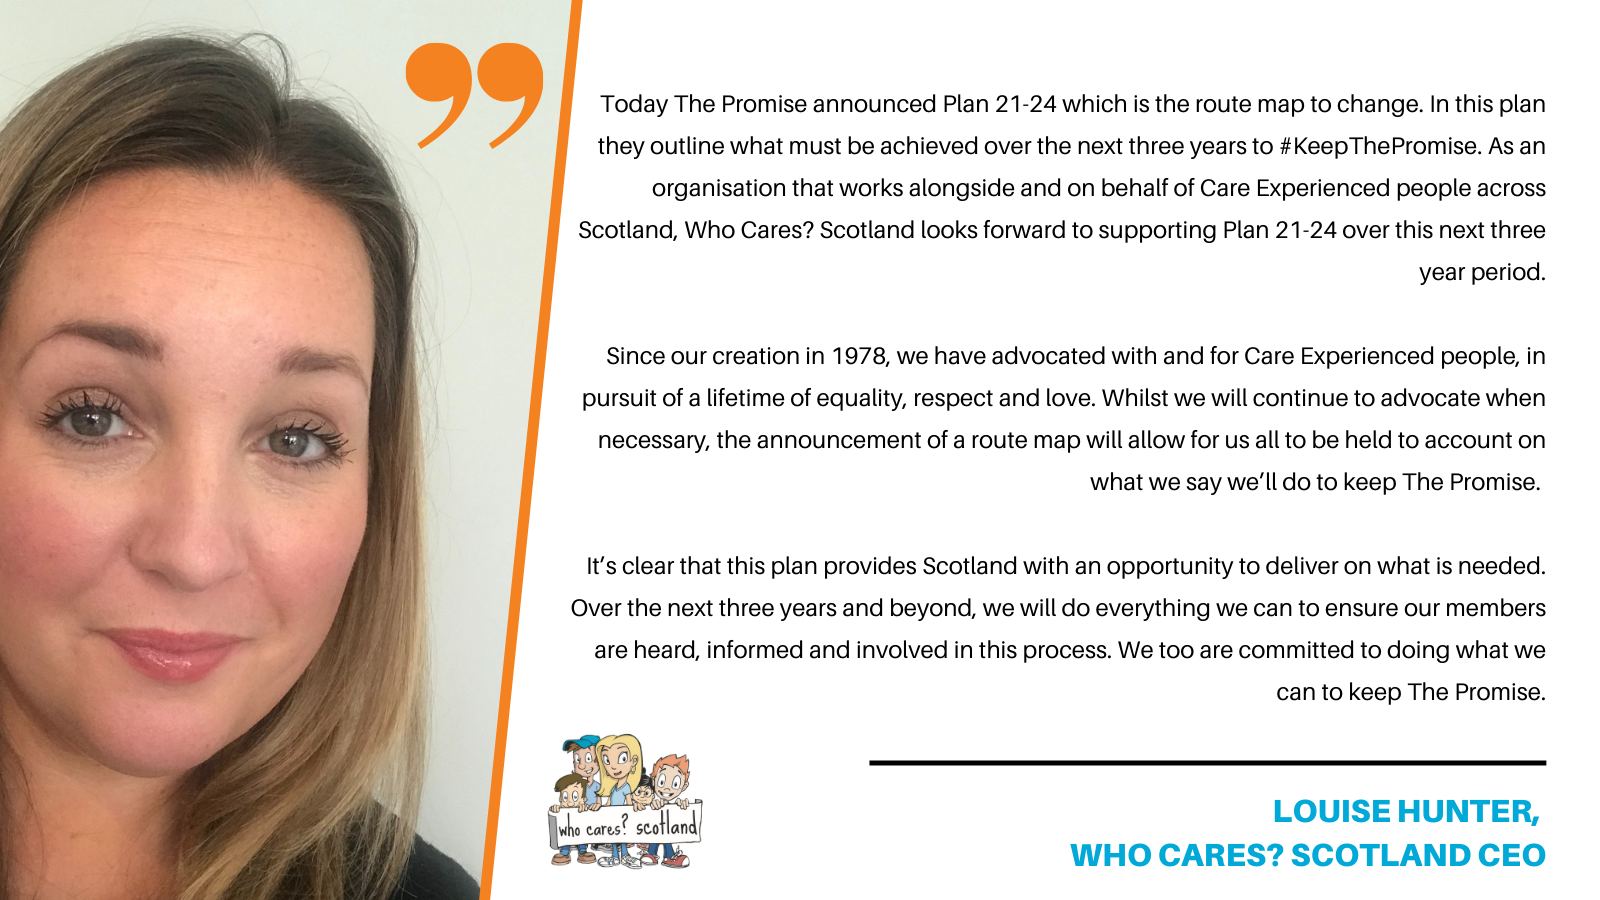 Who Cares? Scotland Shows Support for The Promise Plan 21-24